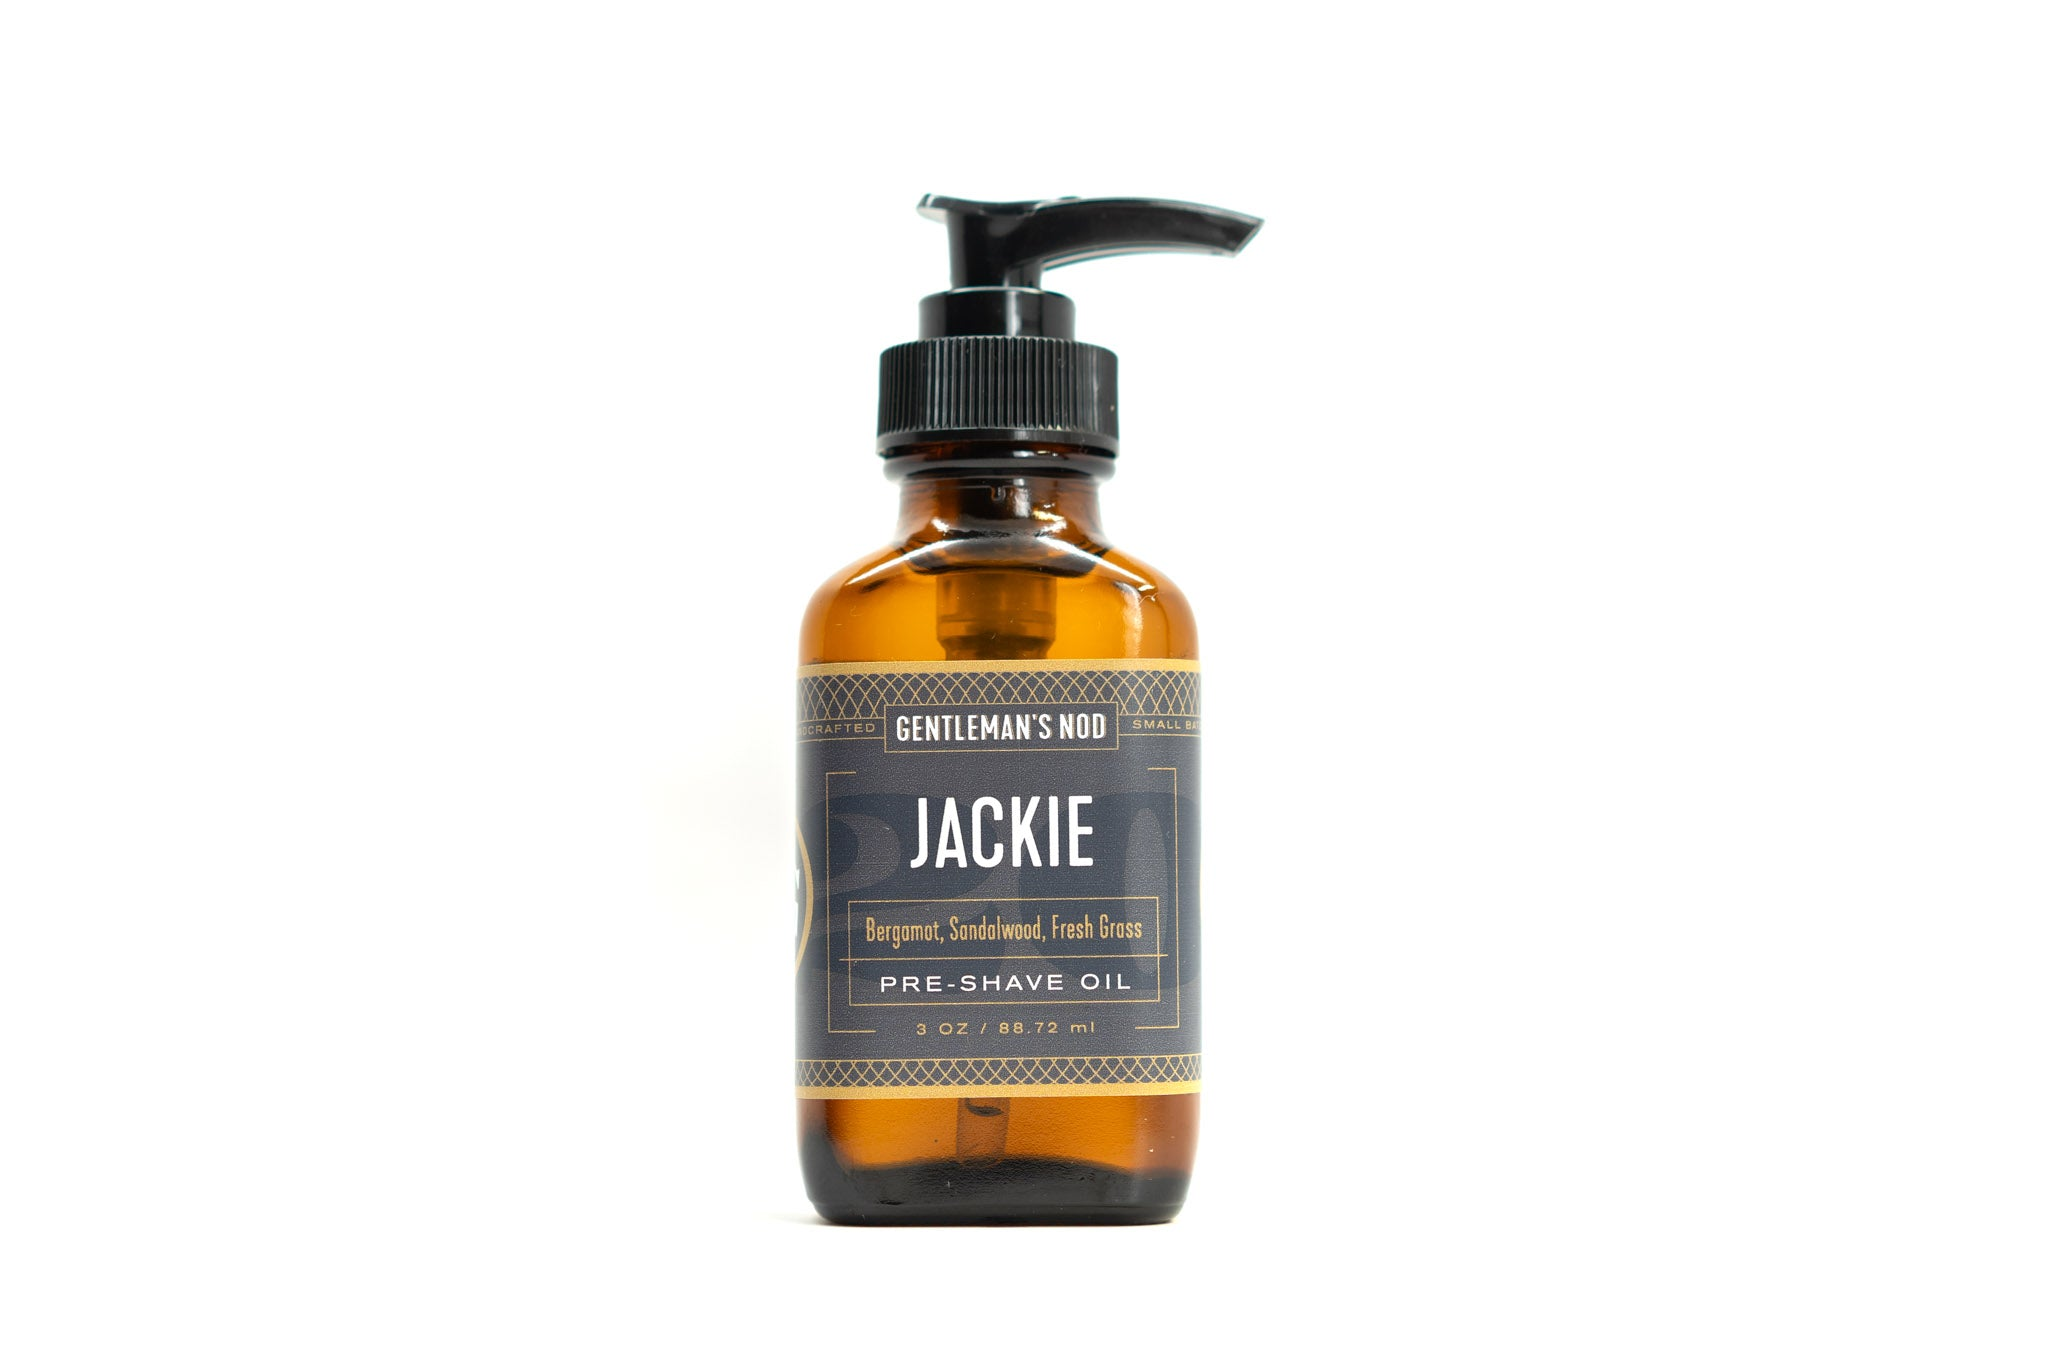 Jackie Pre-Shave Oil